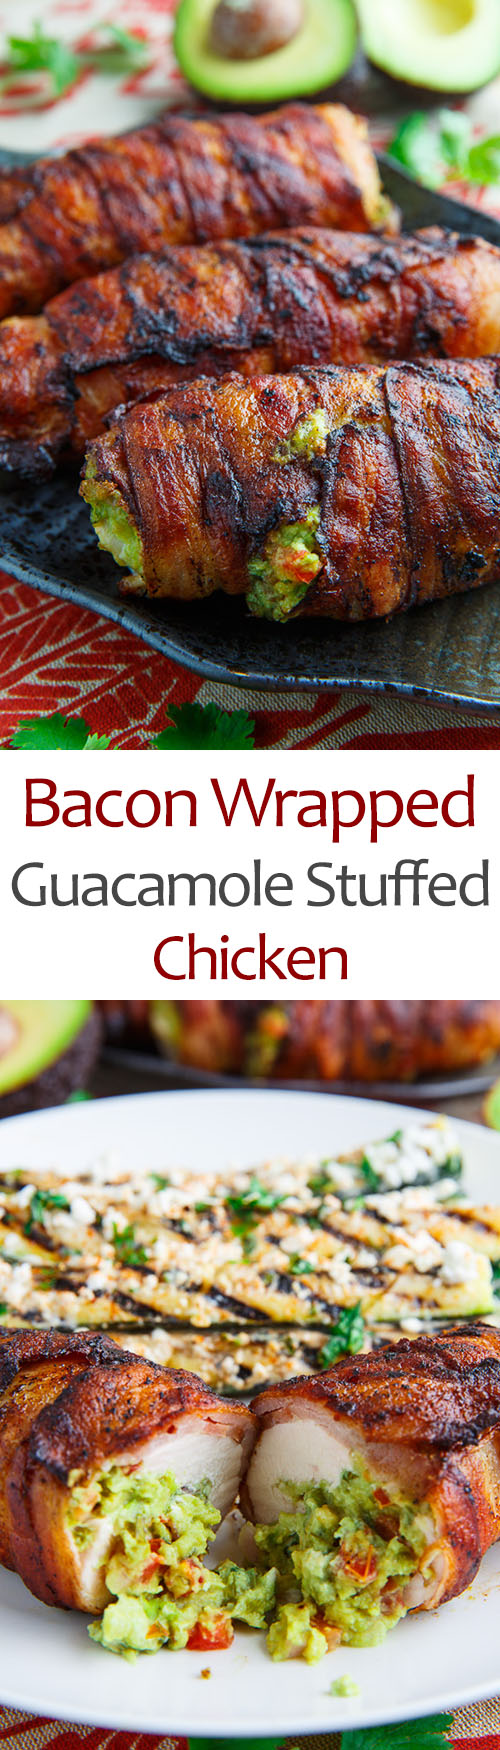 Bacon Wrapped Guacamole Stuffed Chicken